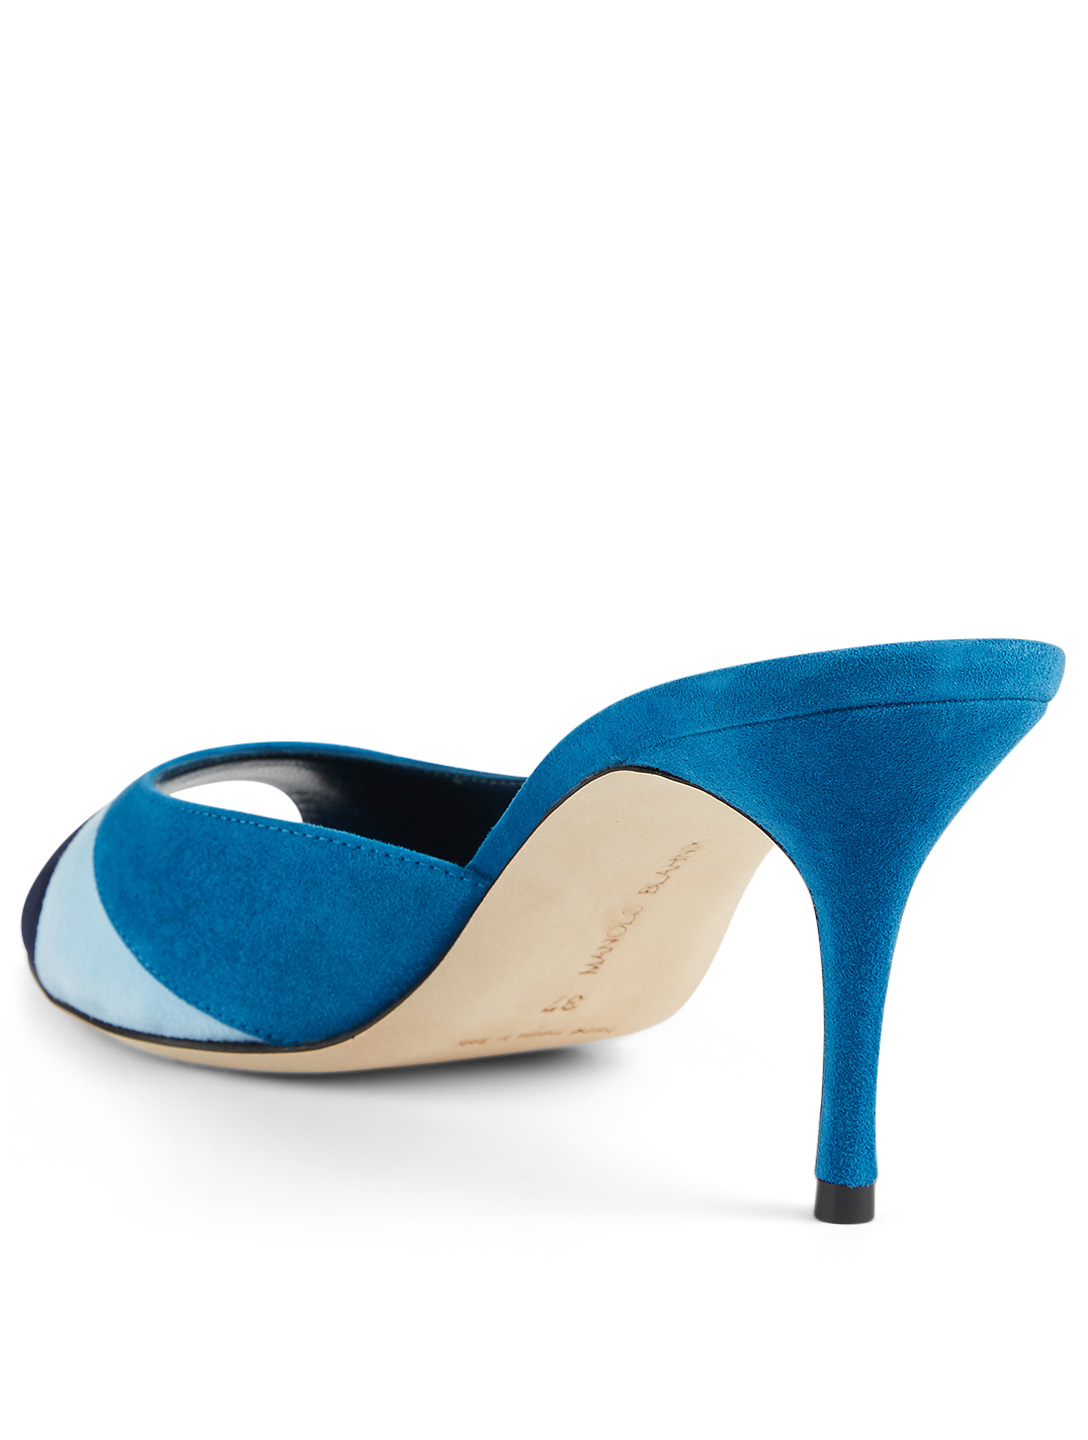 MANOLO BLAHNIK Apoyo Suede Heeled Mule Sandals Women's Blue